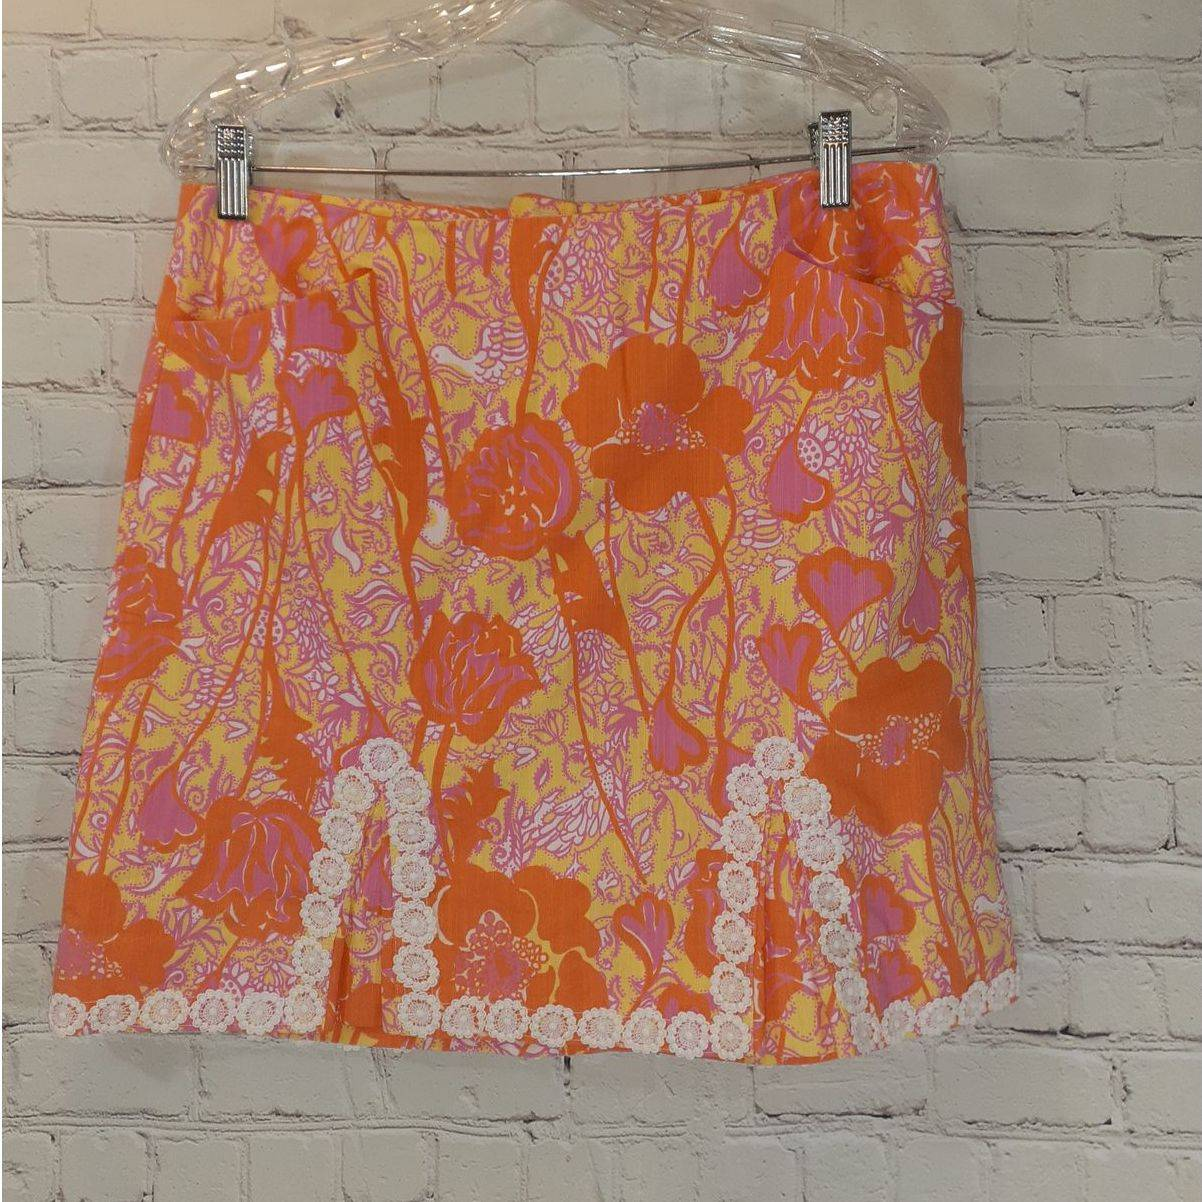 Lily Pulitzer skirt w/ lace detailing 8